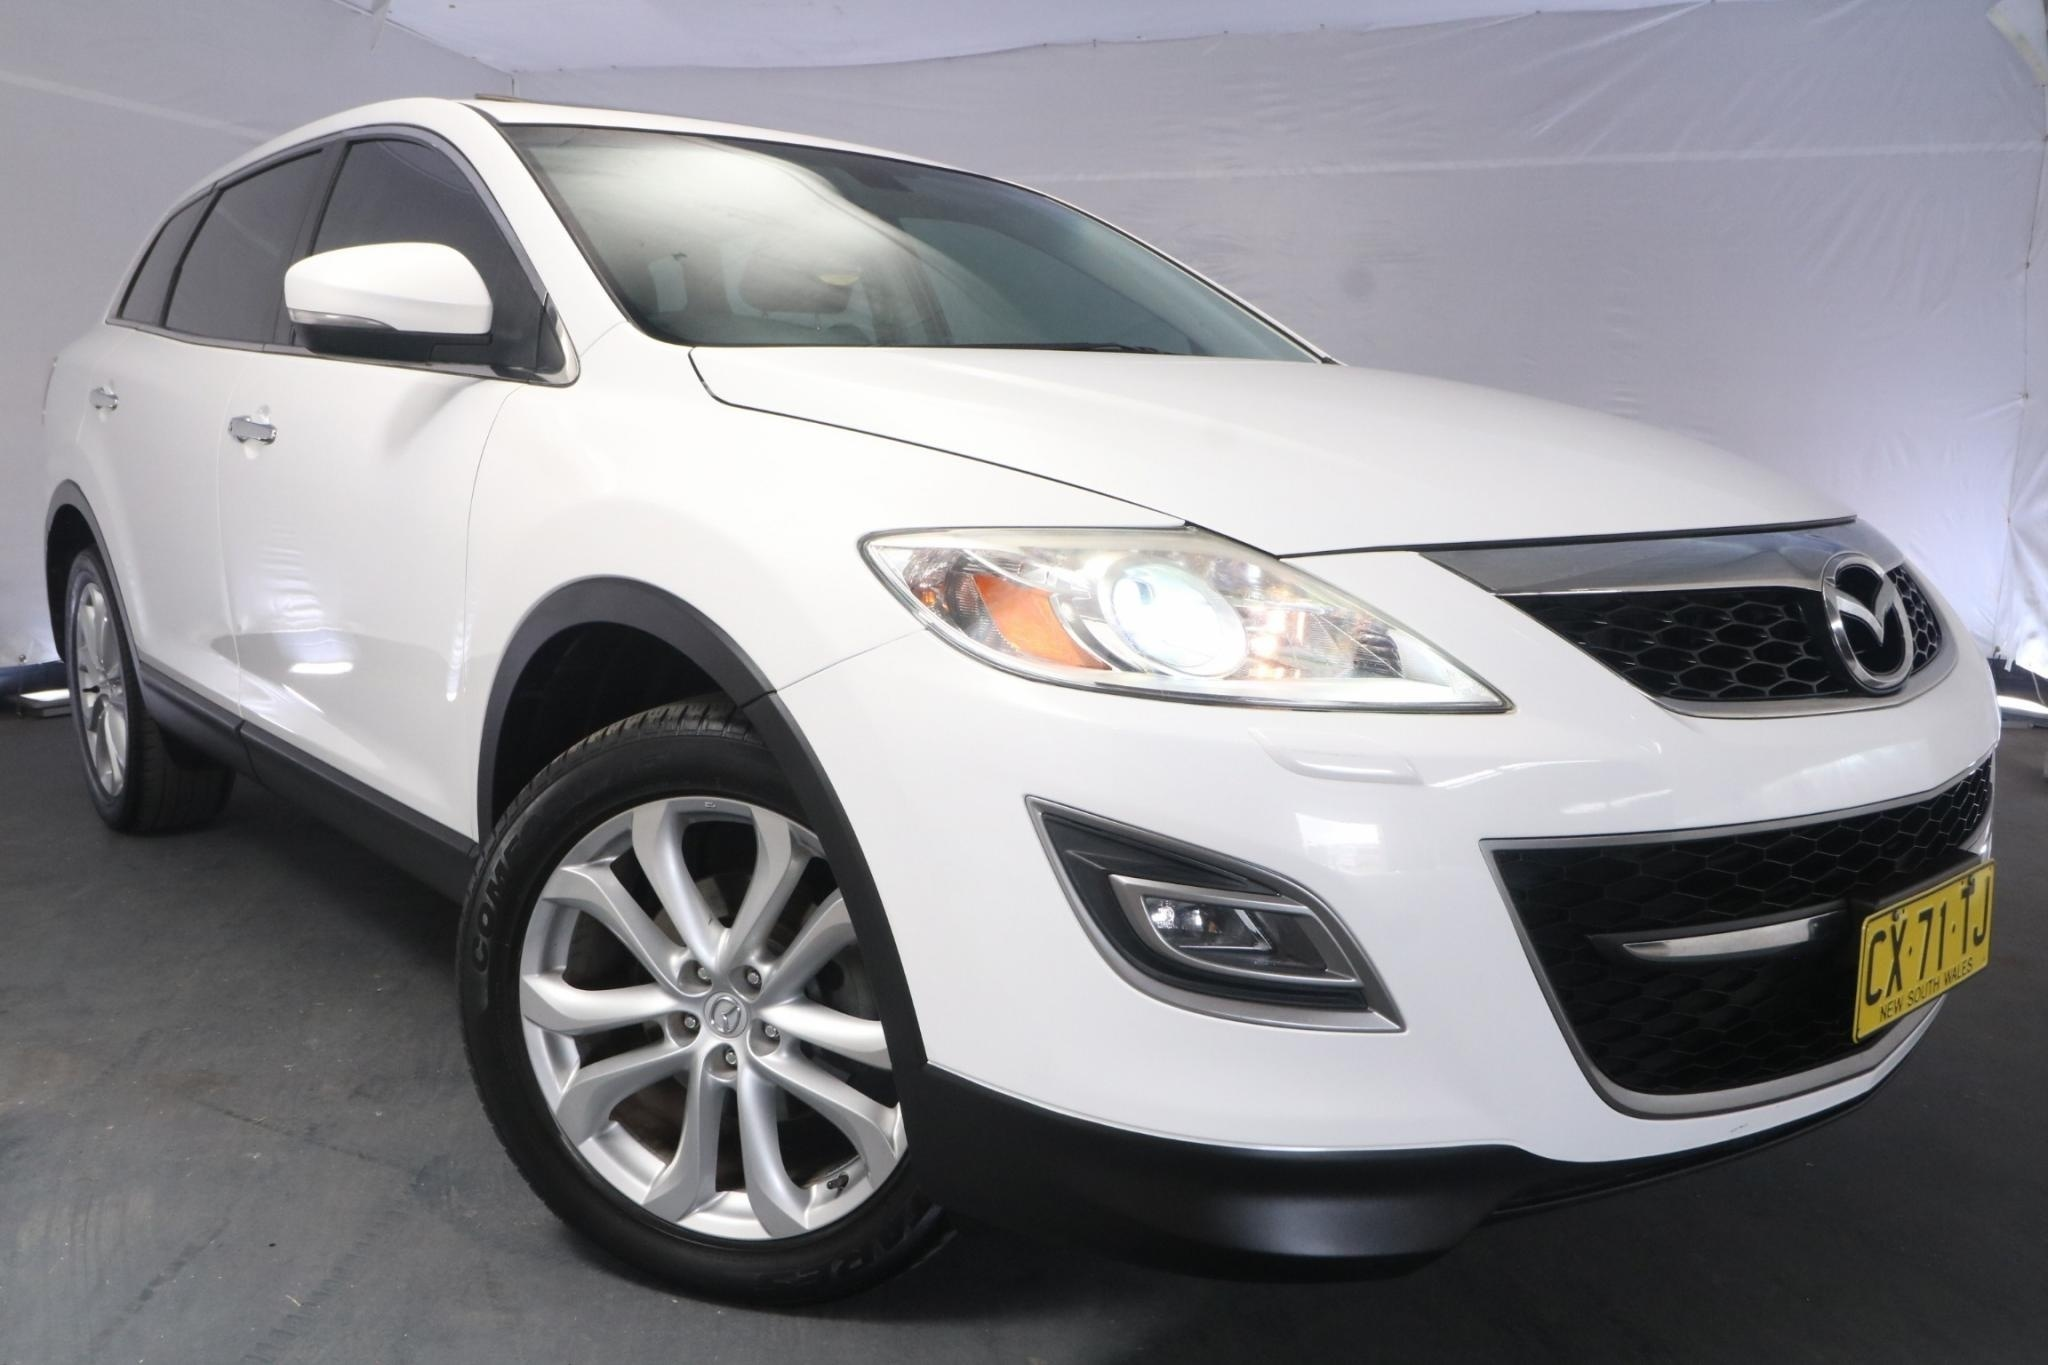 2011 Mazda CX-9 LUXURY 10 UPGRADE / 6 Speed Auto Activematic / Wagon / 3.7L / 6 Cylinder / Petrol / 4x4 / 4 door / November release LGA11A